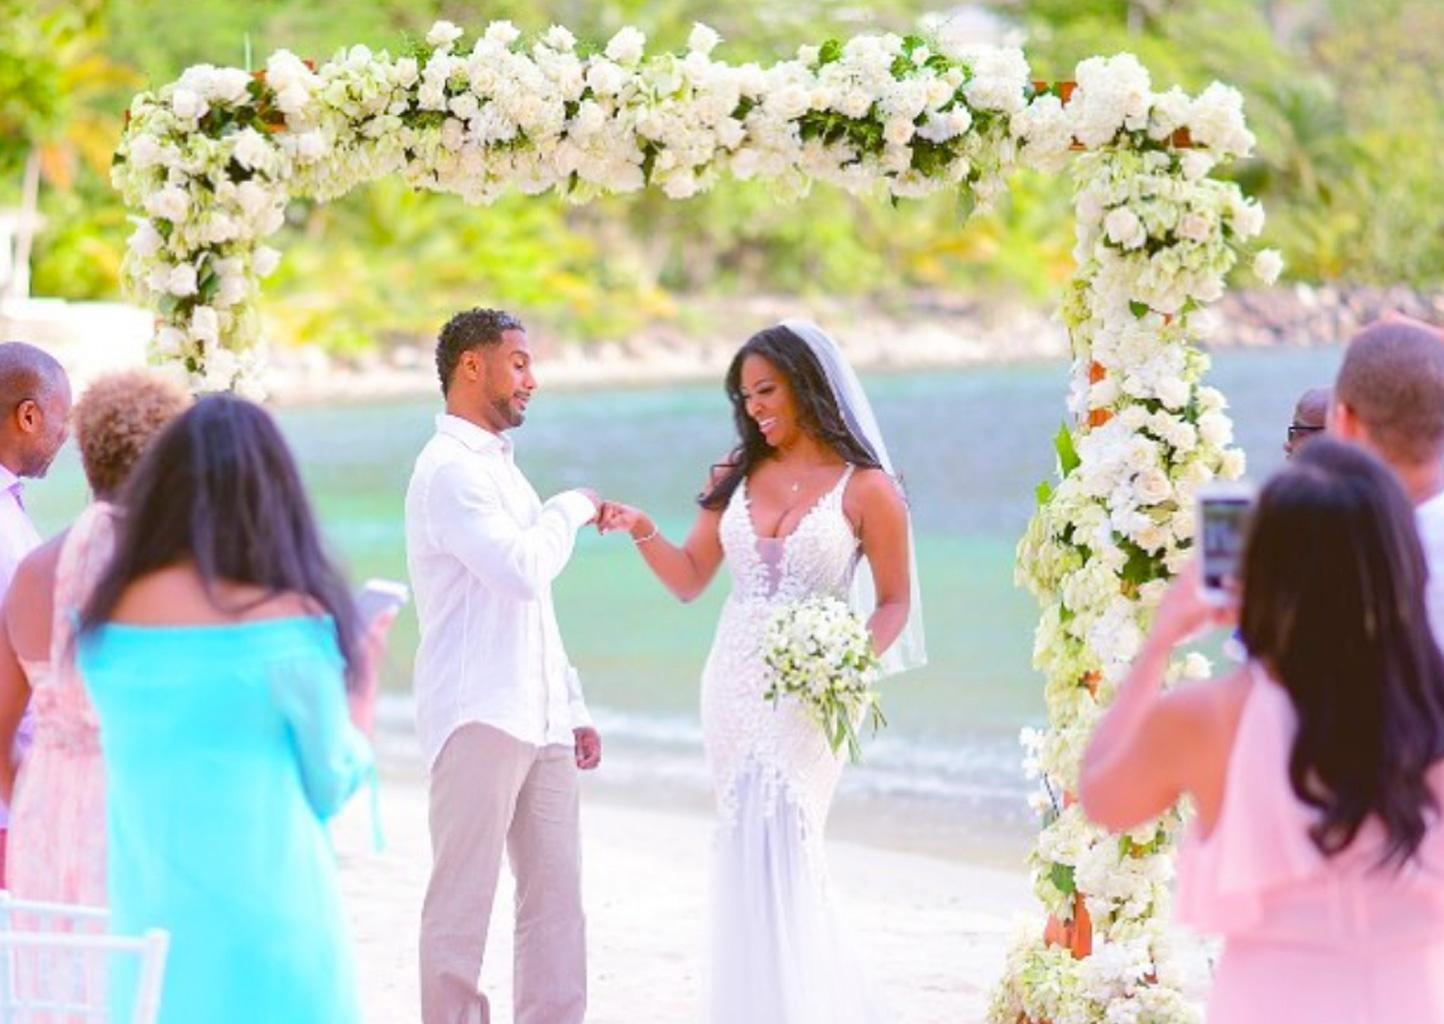 Marc Daly Speaks As He And Kenya Moore Decide To Divorce: 'I Will Always Have Great Care For Her'